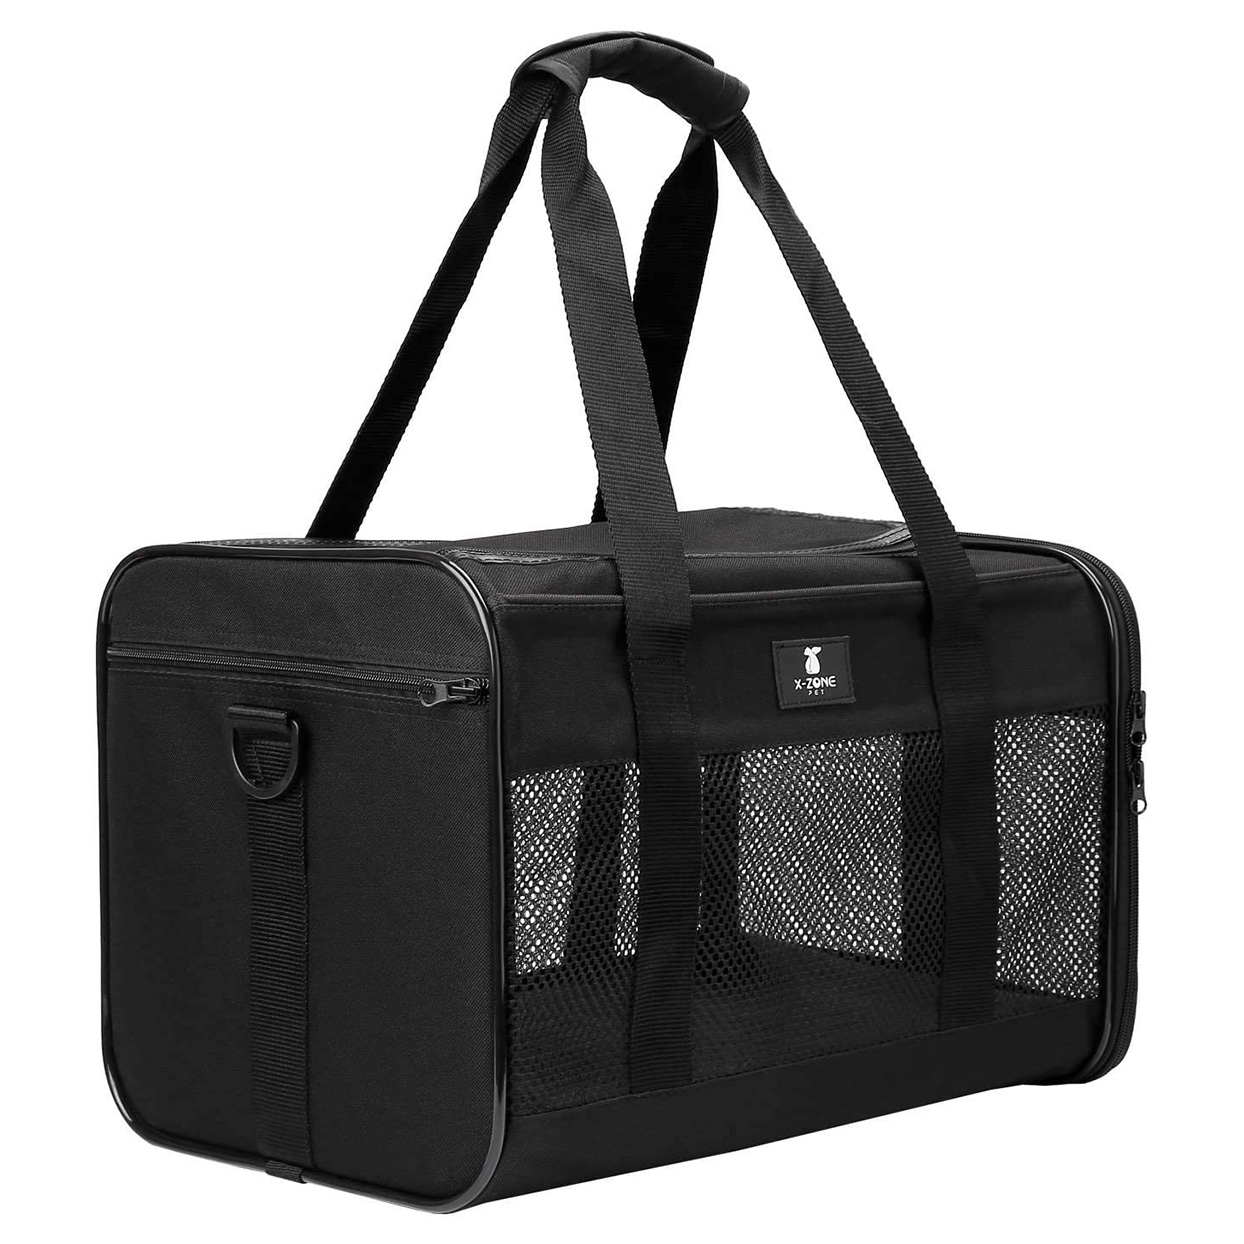 X-ZONE PET Foldable Soft Airline Approved Pet Travel Carrier on a white background